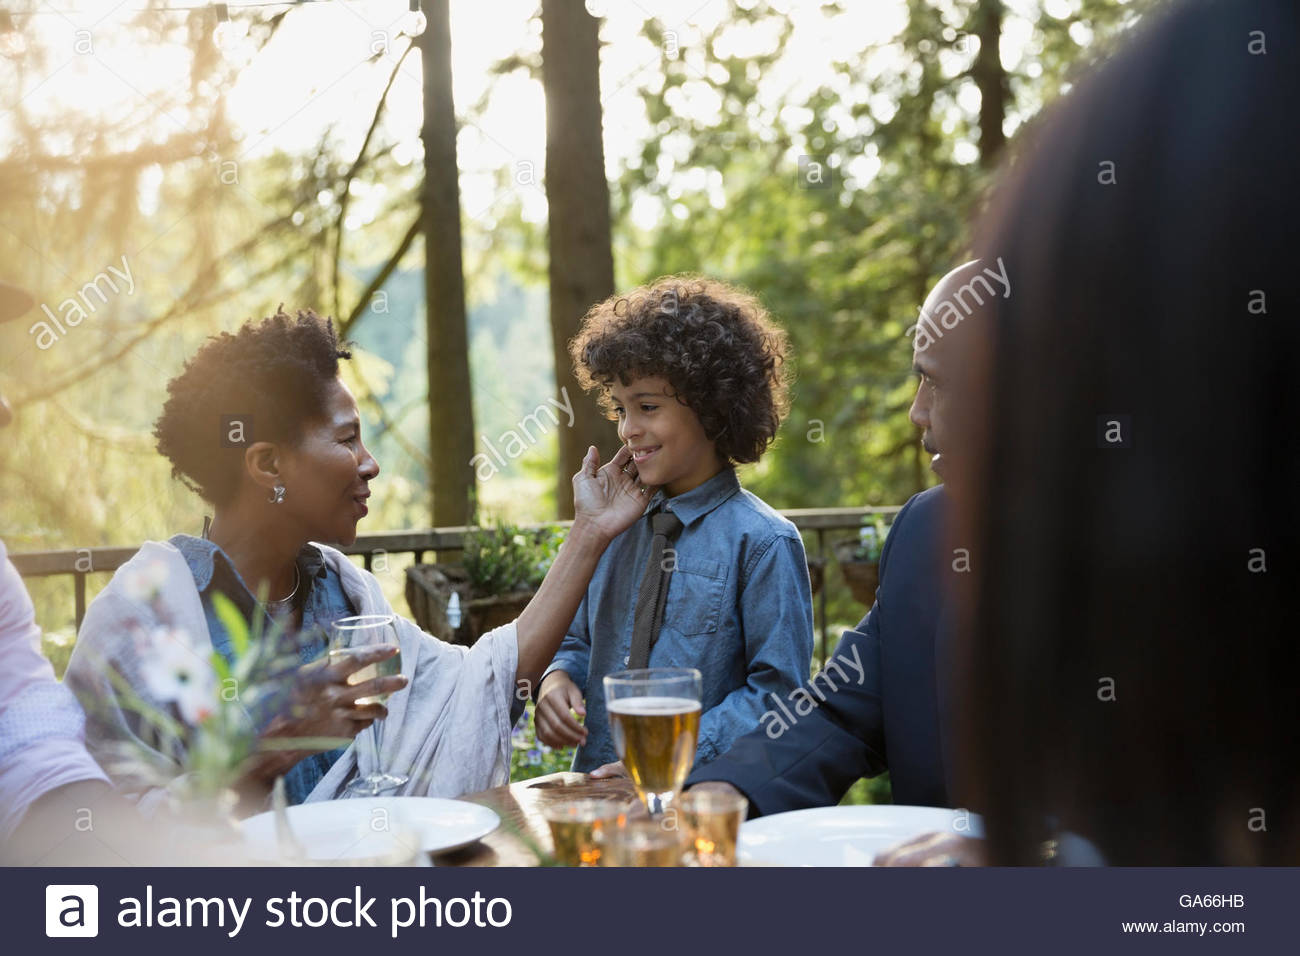 Affectionate grandmother and grandson at dinner party - Stock Image